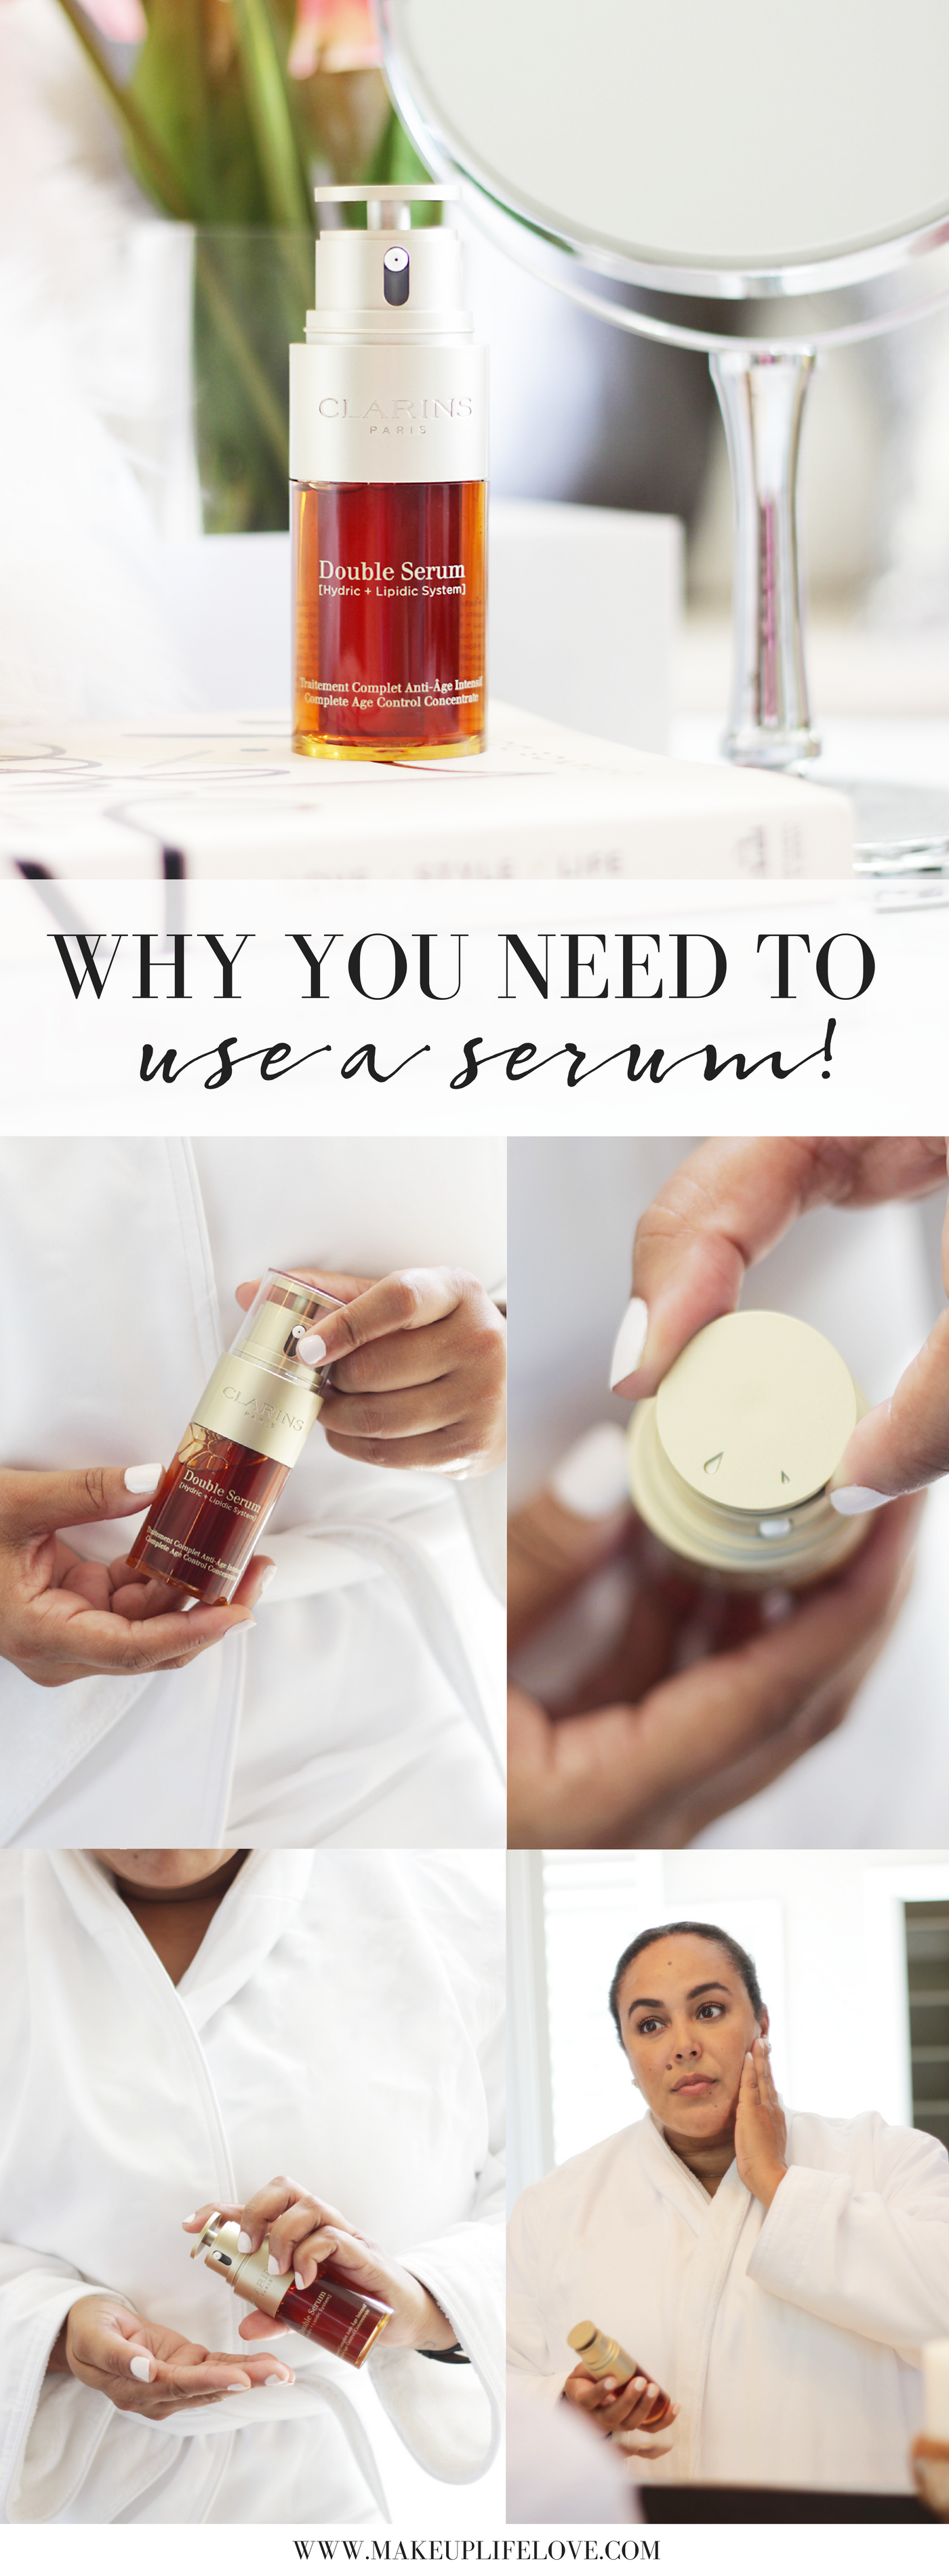 Confused about why you need to use a serum? Here are the hows, the whys and the reasons you should add one to your skincare regimen ASAP! #NextGenSerum #DoubleSerum - Clarins Double Serum